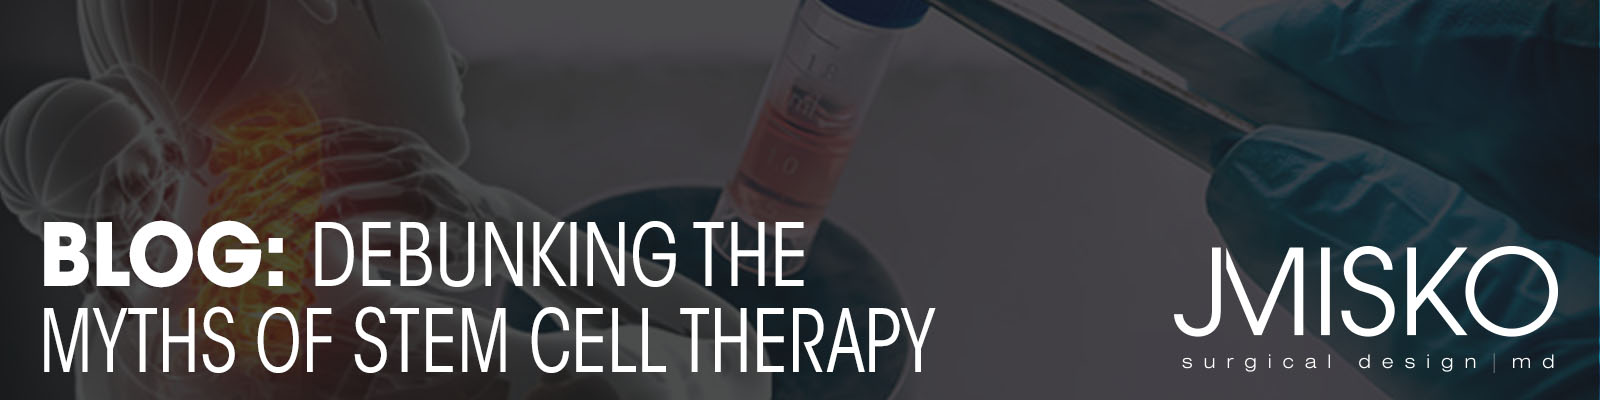 BLOG: Debunking Myths About Stem Cell Therapy - JMISKO